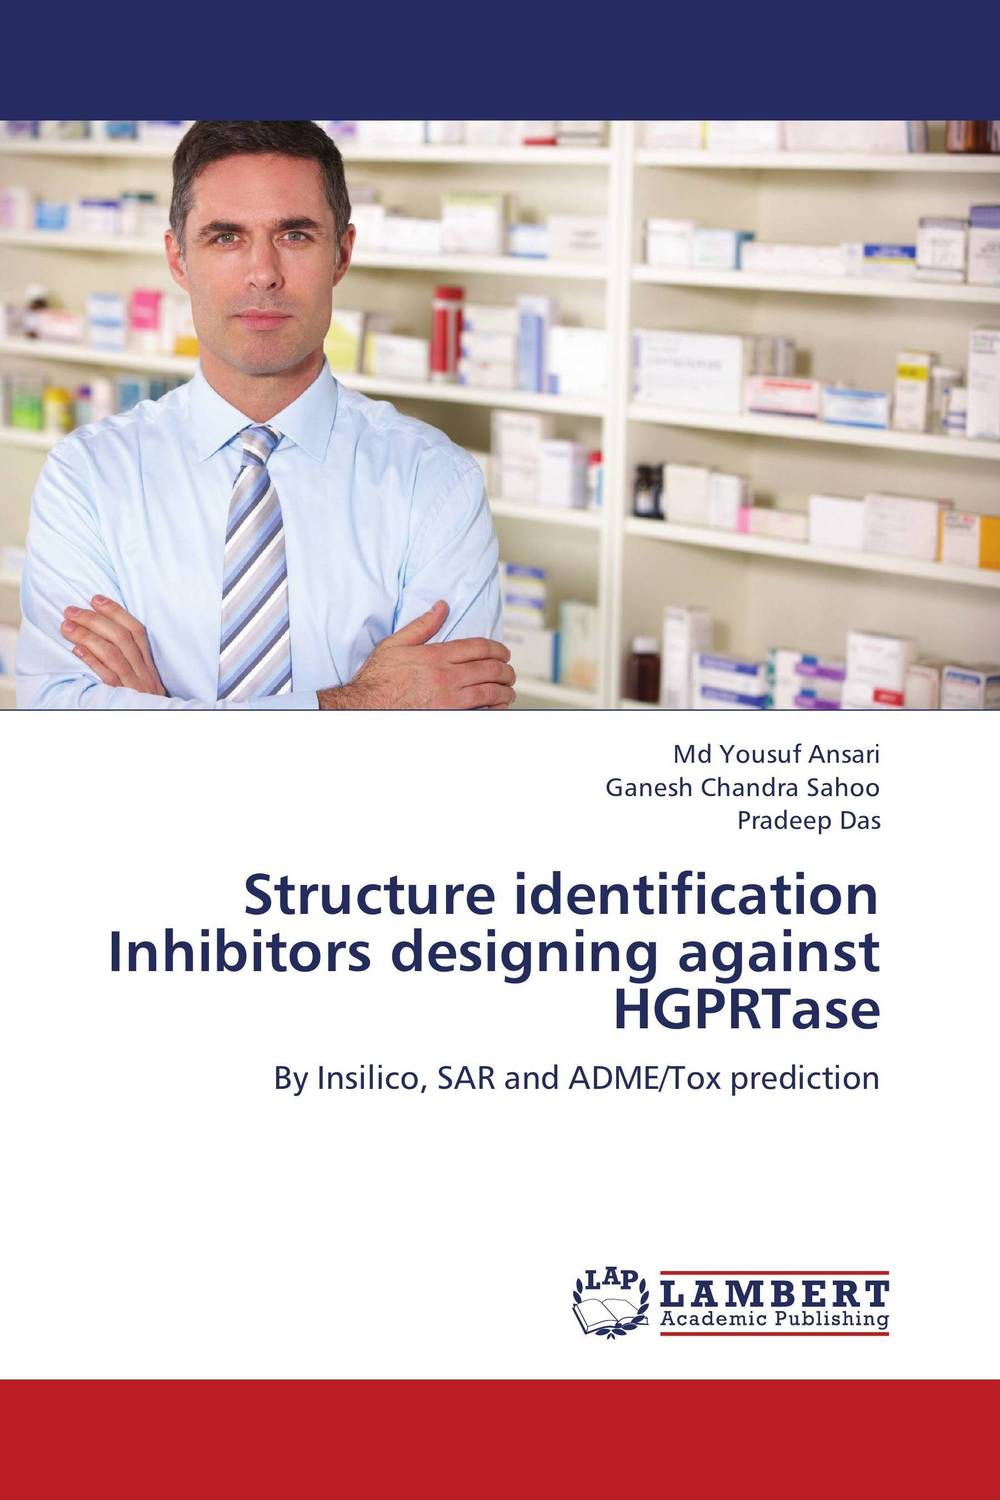 Structure identification Inhibitors designing against HGPRTase md yousuf ansari ganesh chandra sahoo and pradeep das structure identification inhibitors designing against hgprtase